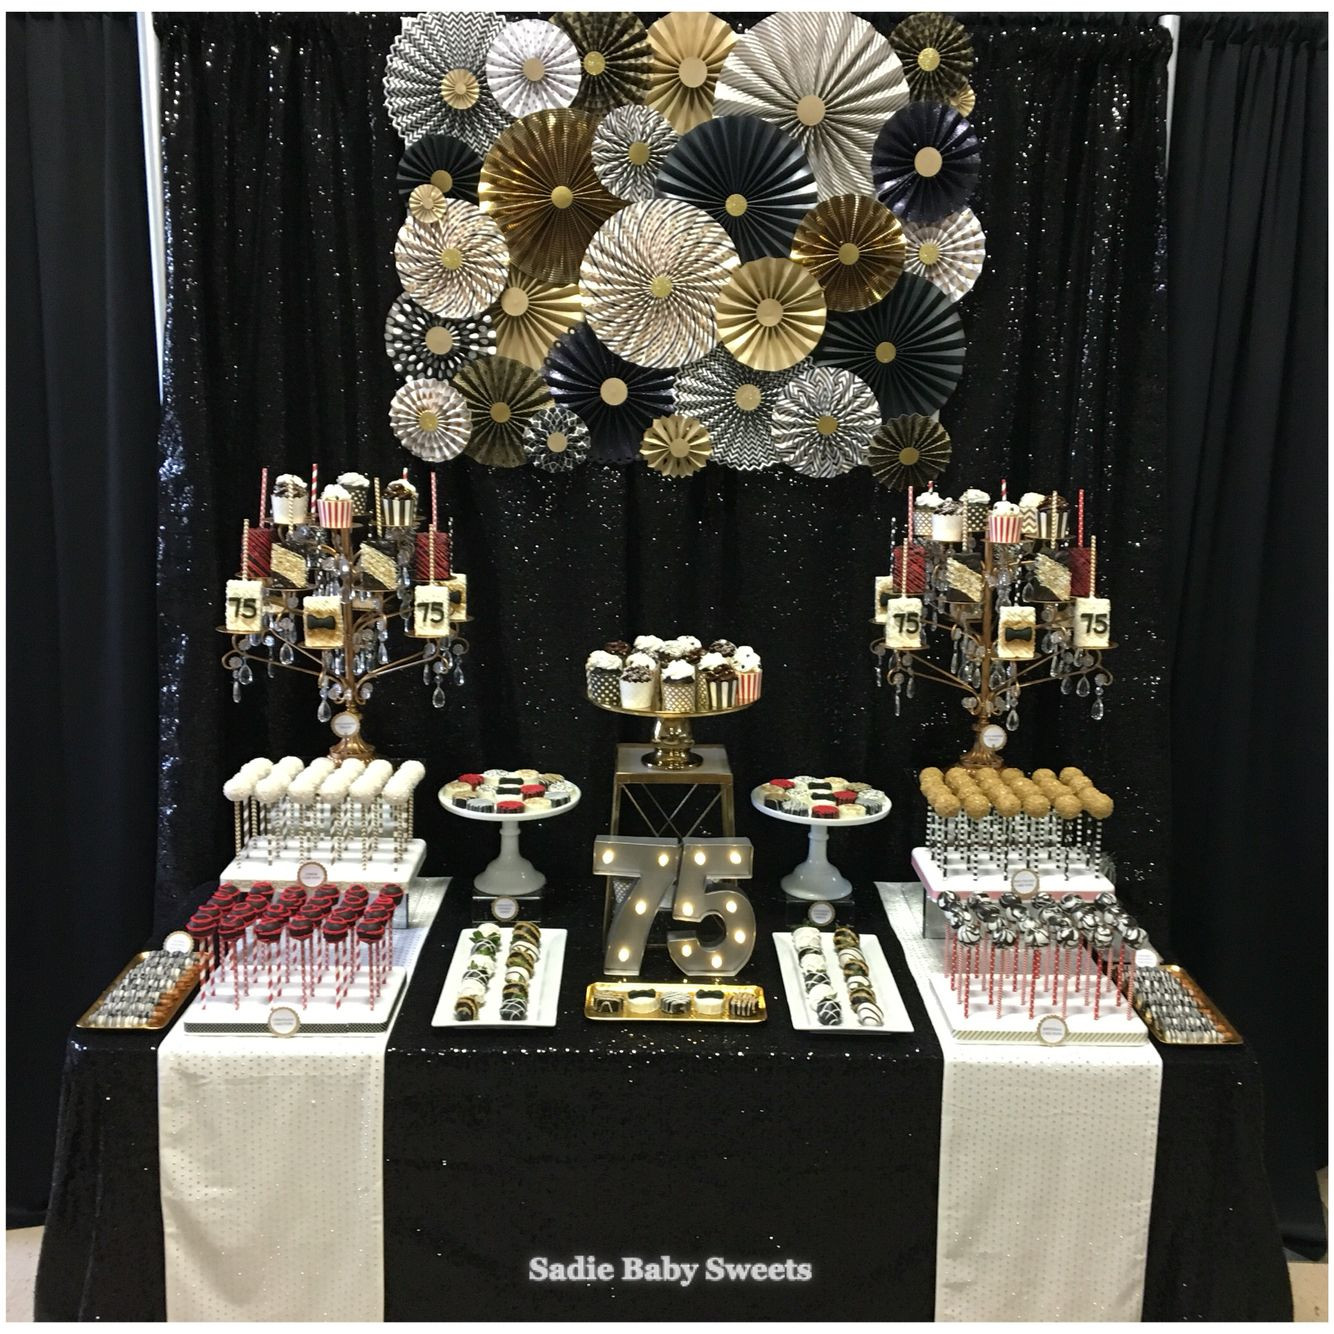 75th Birthday Party Decorations  75th Birthday Party Black Tie Sweets Table